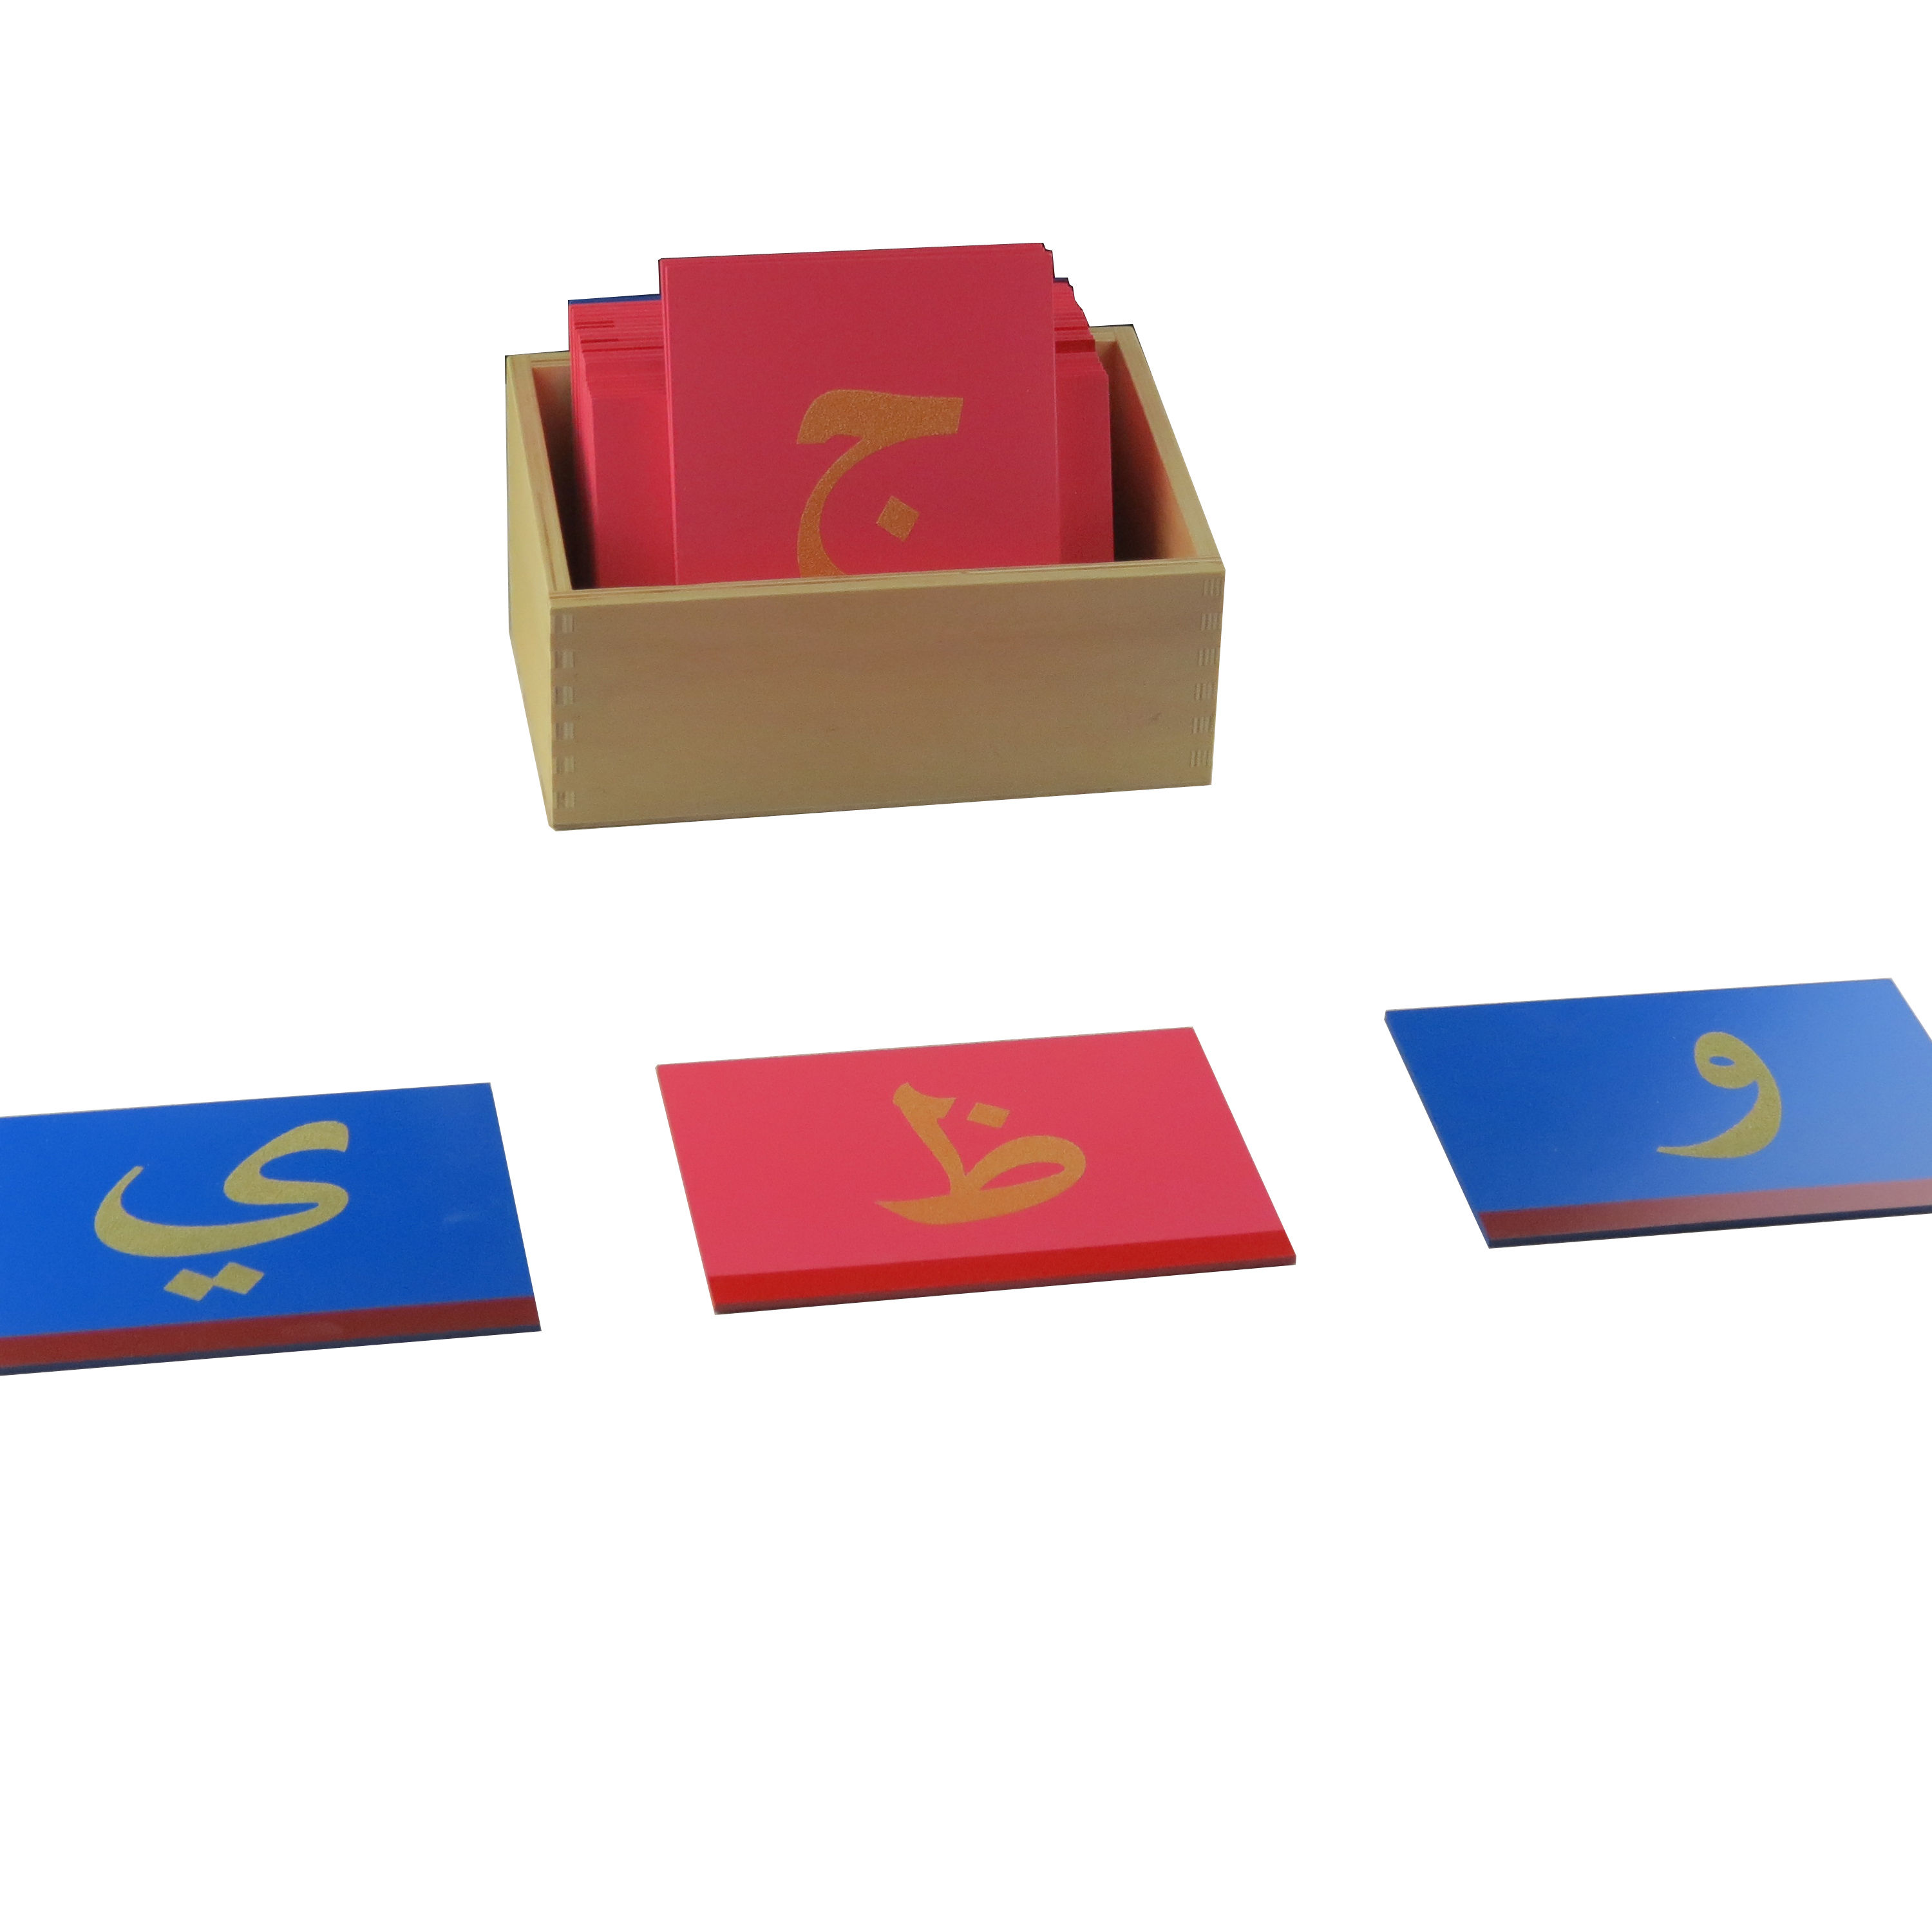 Wooden montessori language educational toys arabic sandpaper letters for children